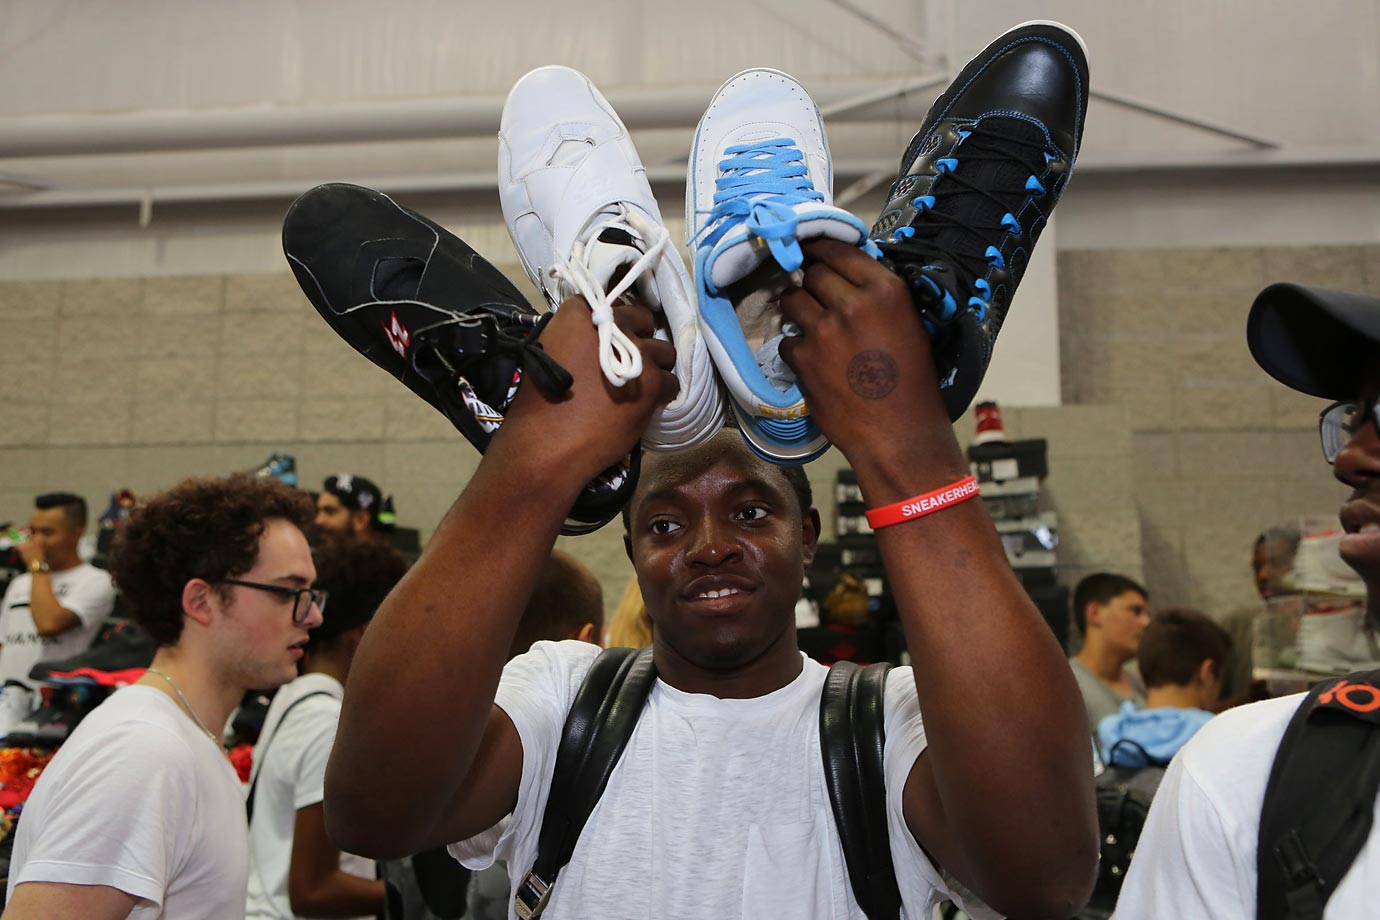 "Known as ""The Greatest Sneaker Show on Earth,"" Sneaker Con returned to New York City last weekend with hundreds of vendors and tens of thousands of sneakers. Seas of shoe fiends filled up the Javits Center in hopes of buying, selling, trading and showing off their sneakers, a sneaker lover's mecca. Check out the scenes from 2015 Sneaker Con."